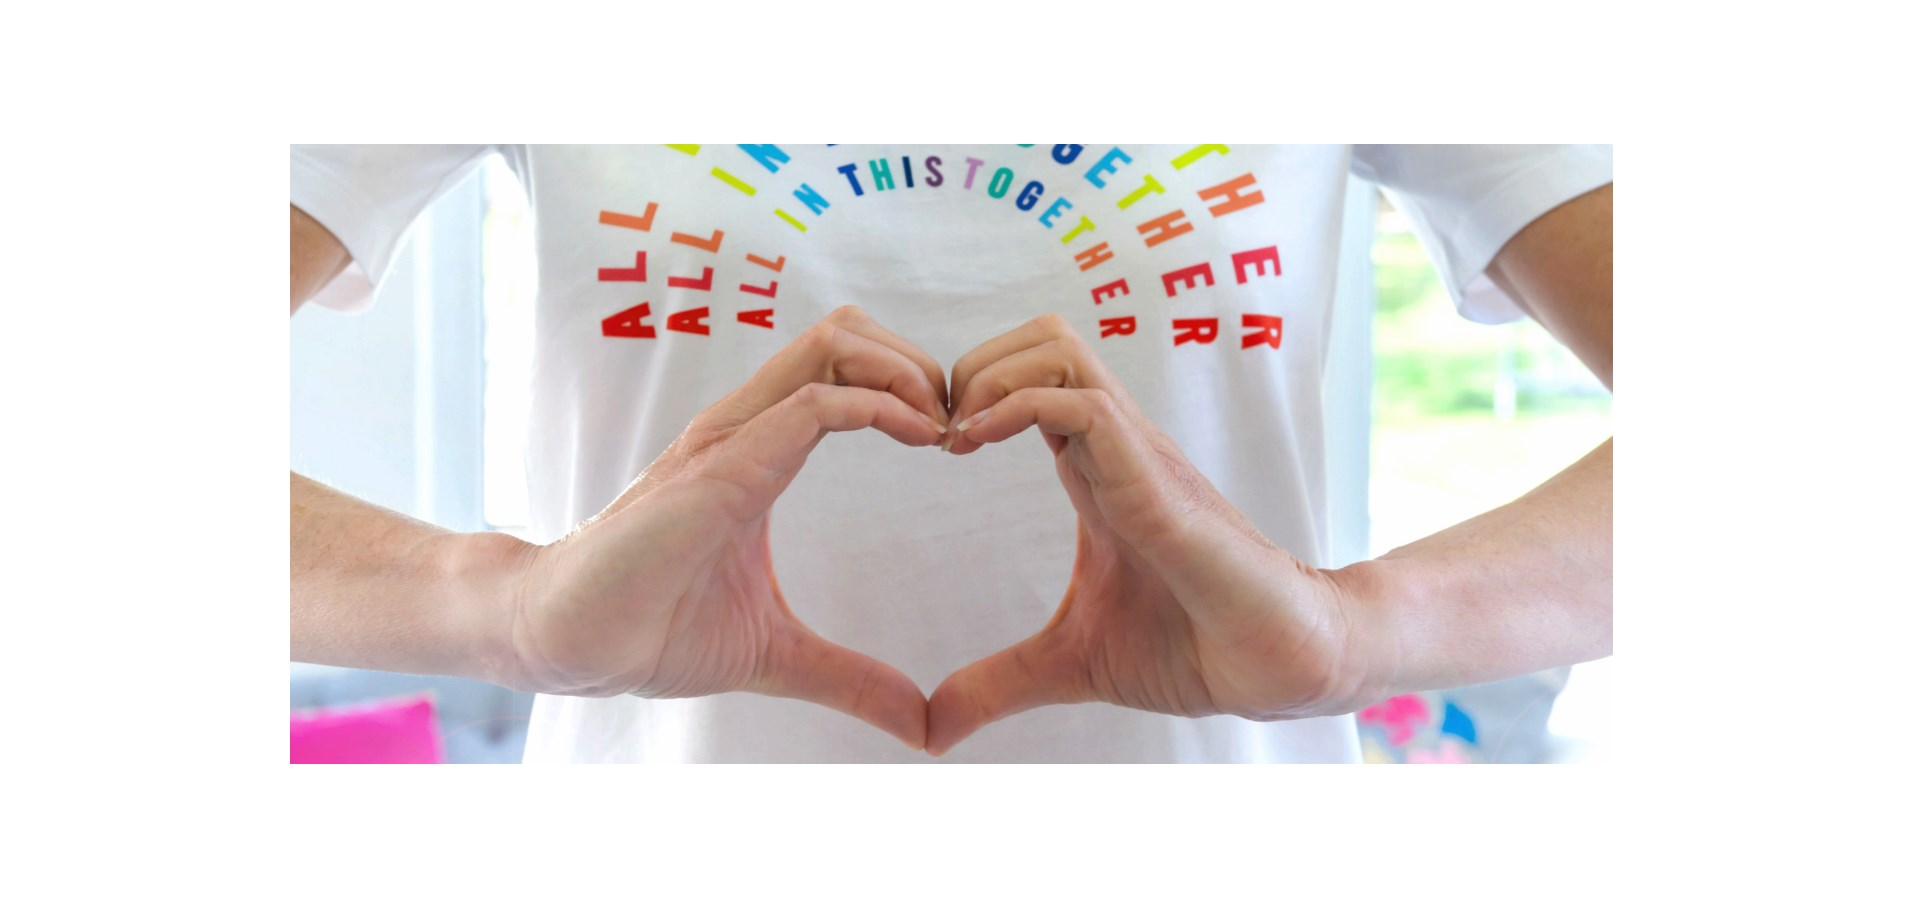 A person making a heart shape with their hands and a printed message on their t shirt - All in this together